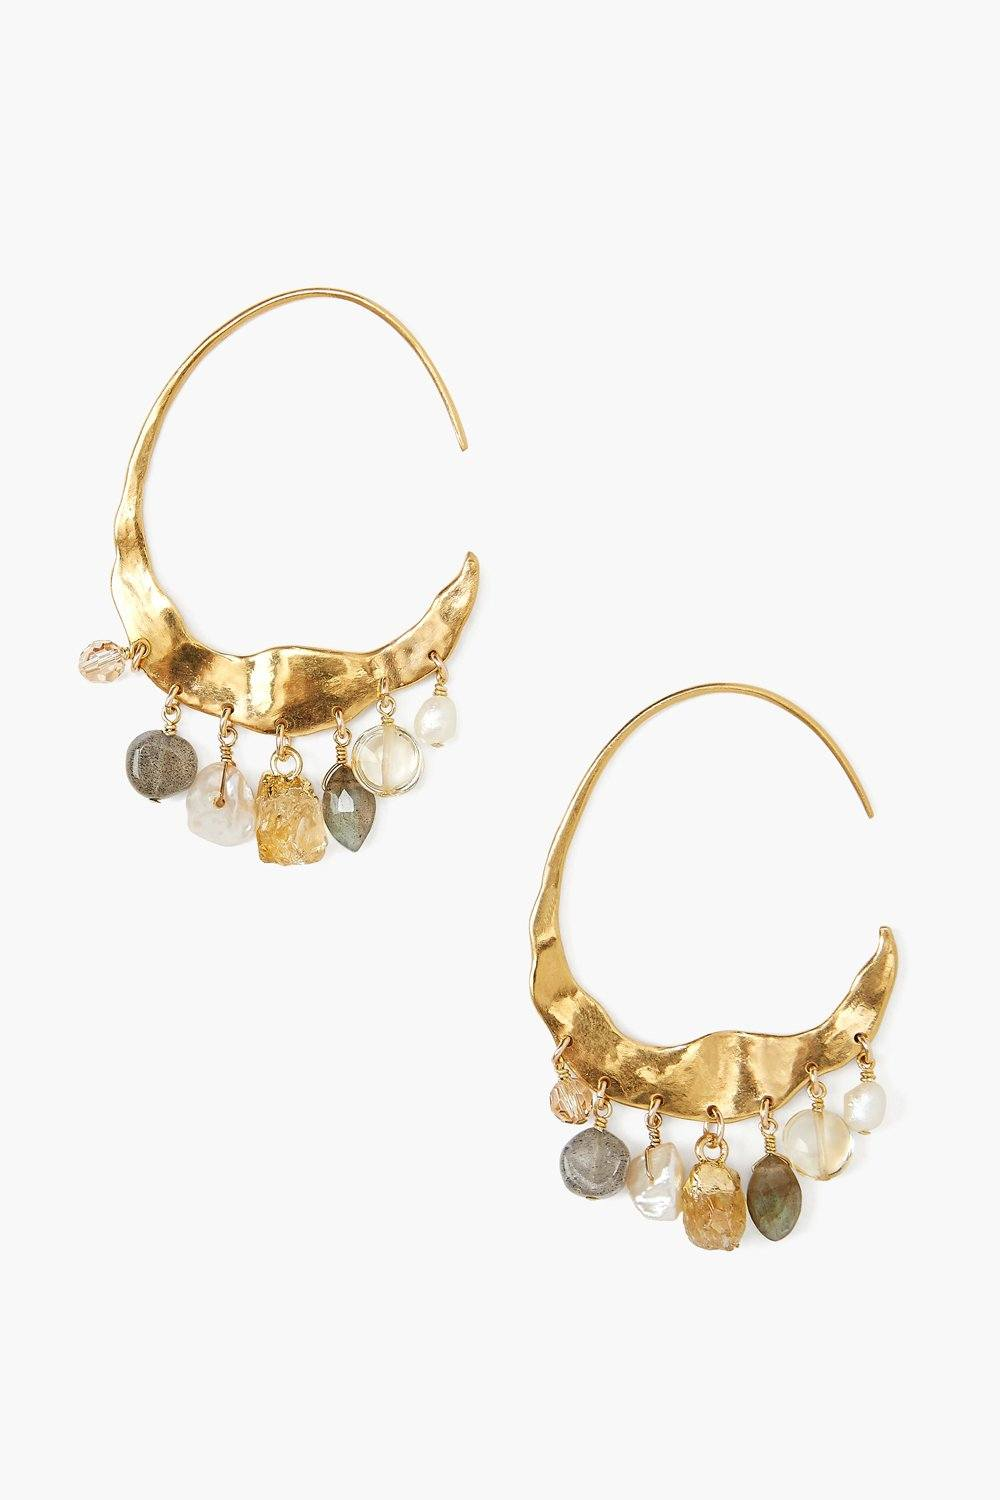 Crescent Cream Pearl and Citrine Mix Gold Hoop Earrings